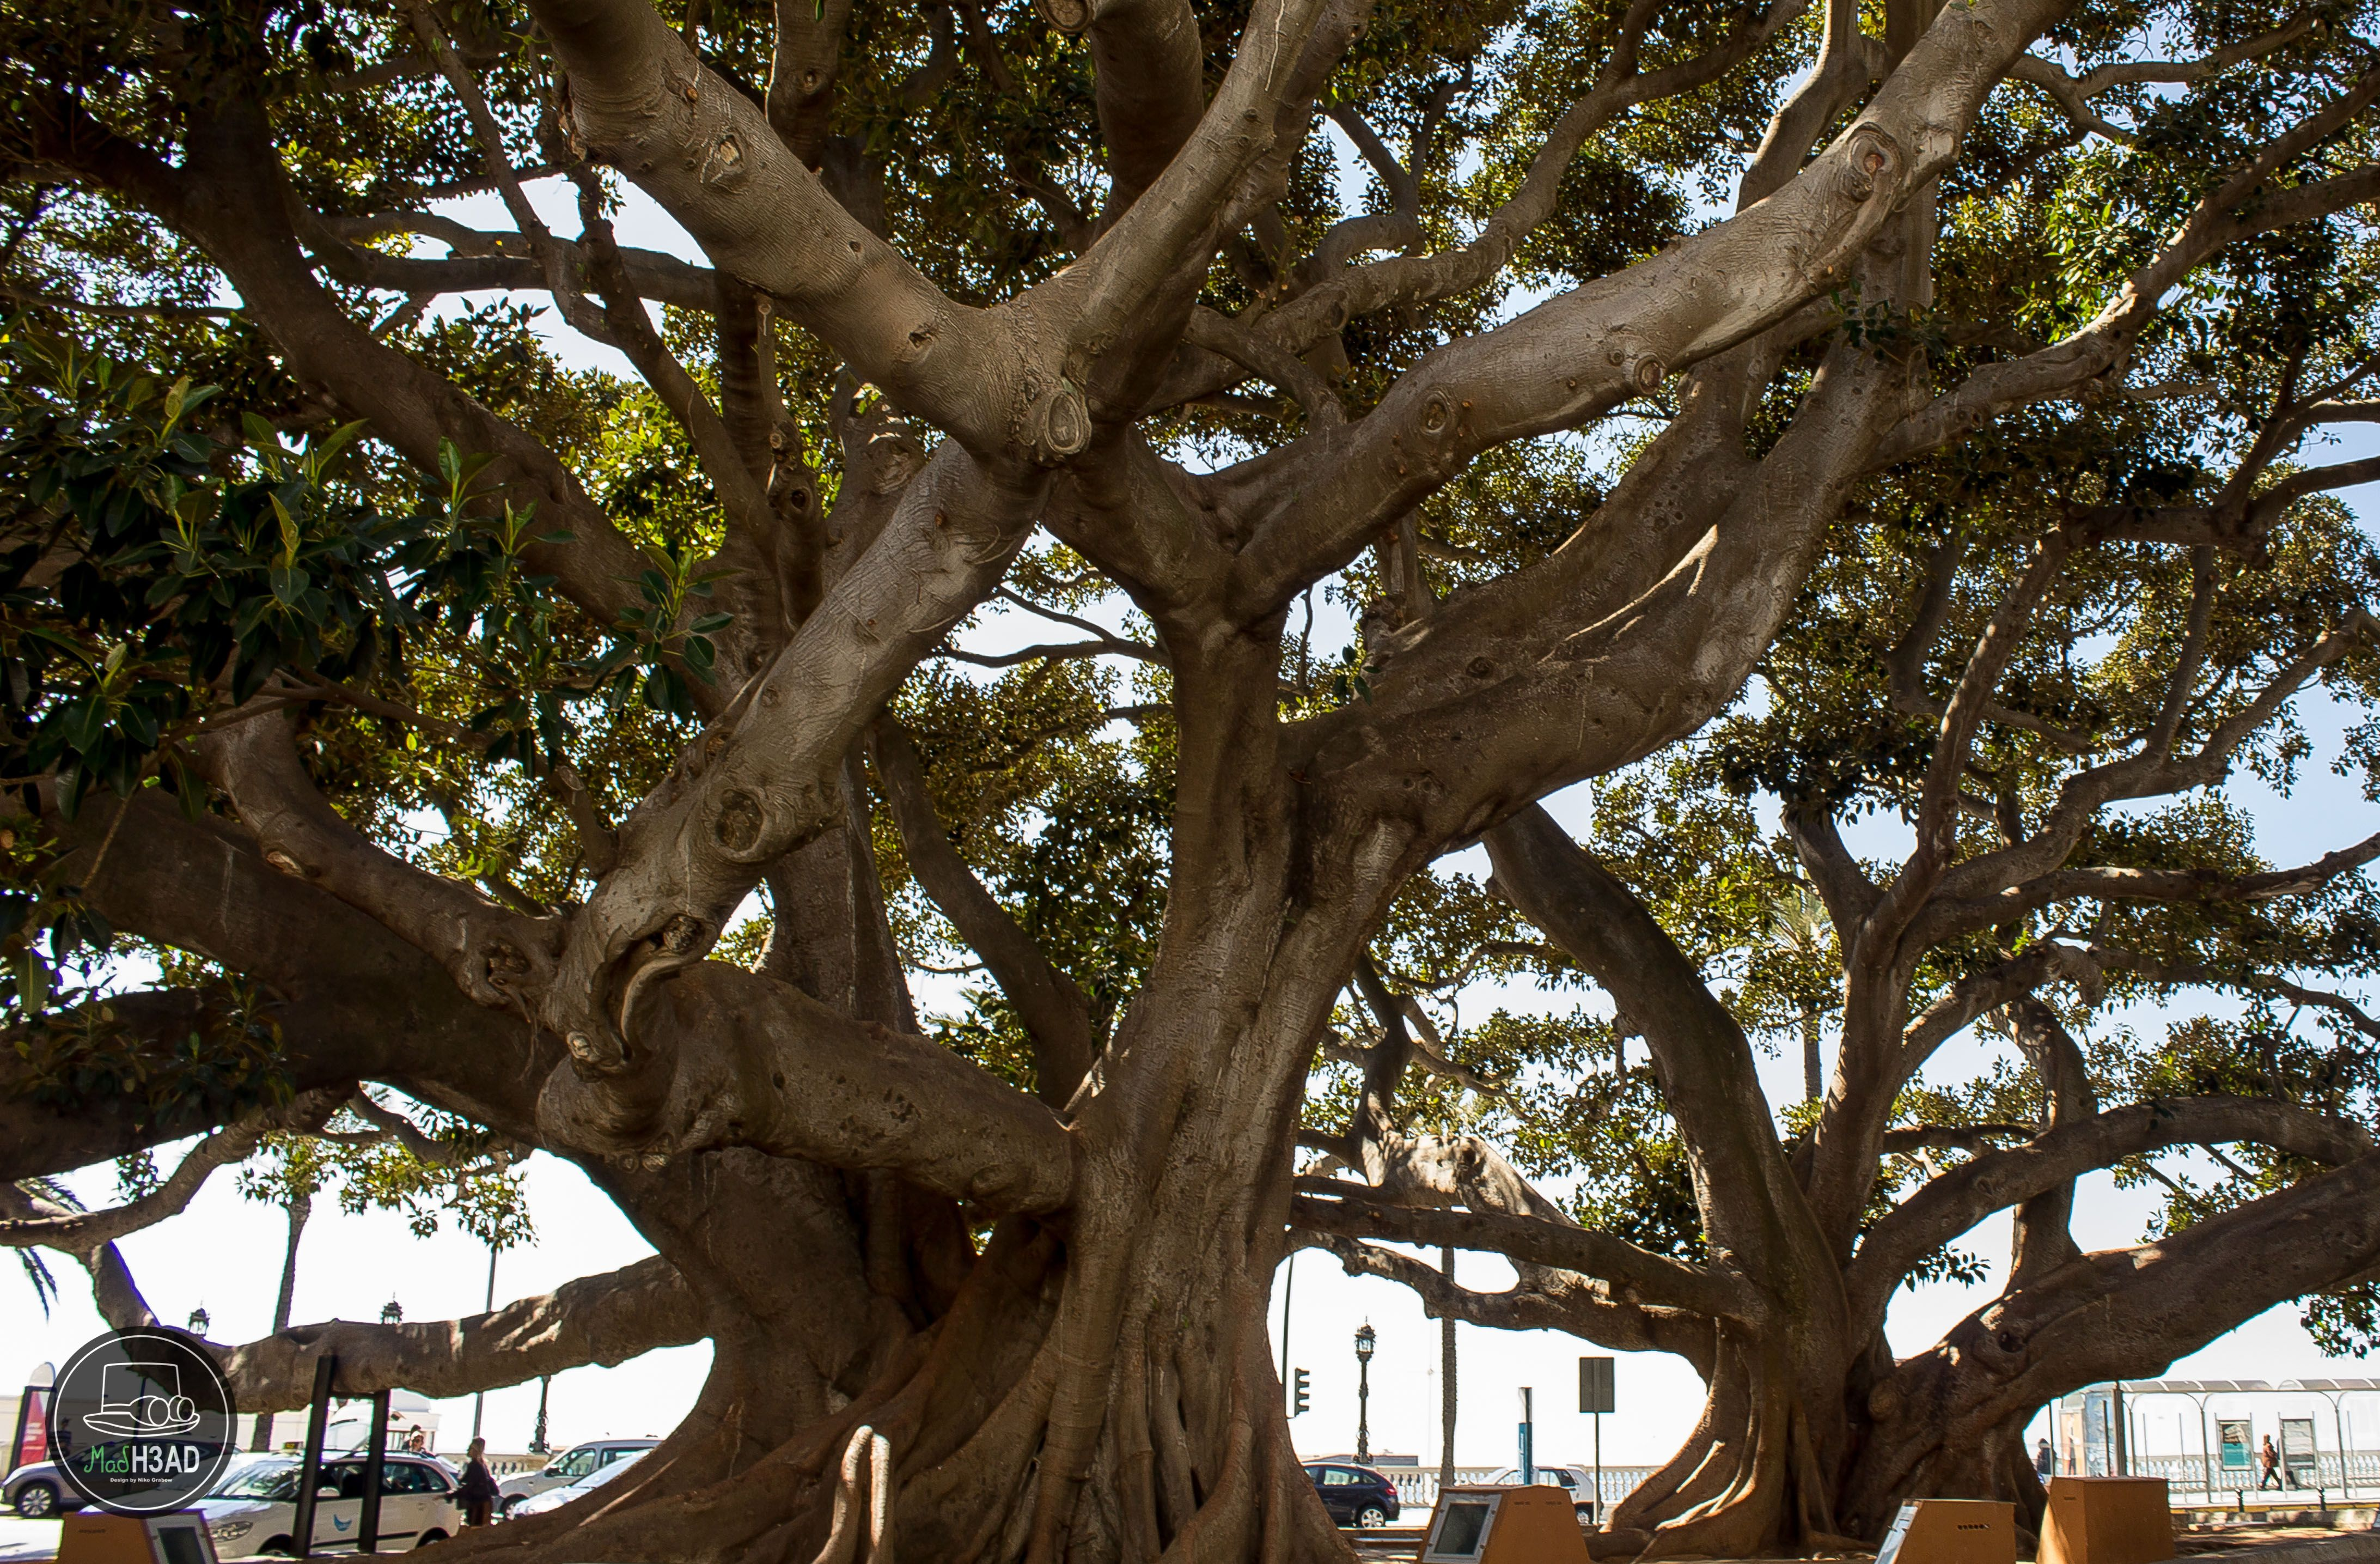 This old tree in Cadiz, Spain had/and hopefully have a epic aura